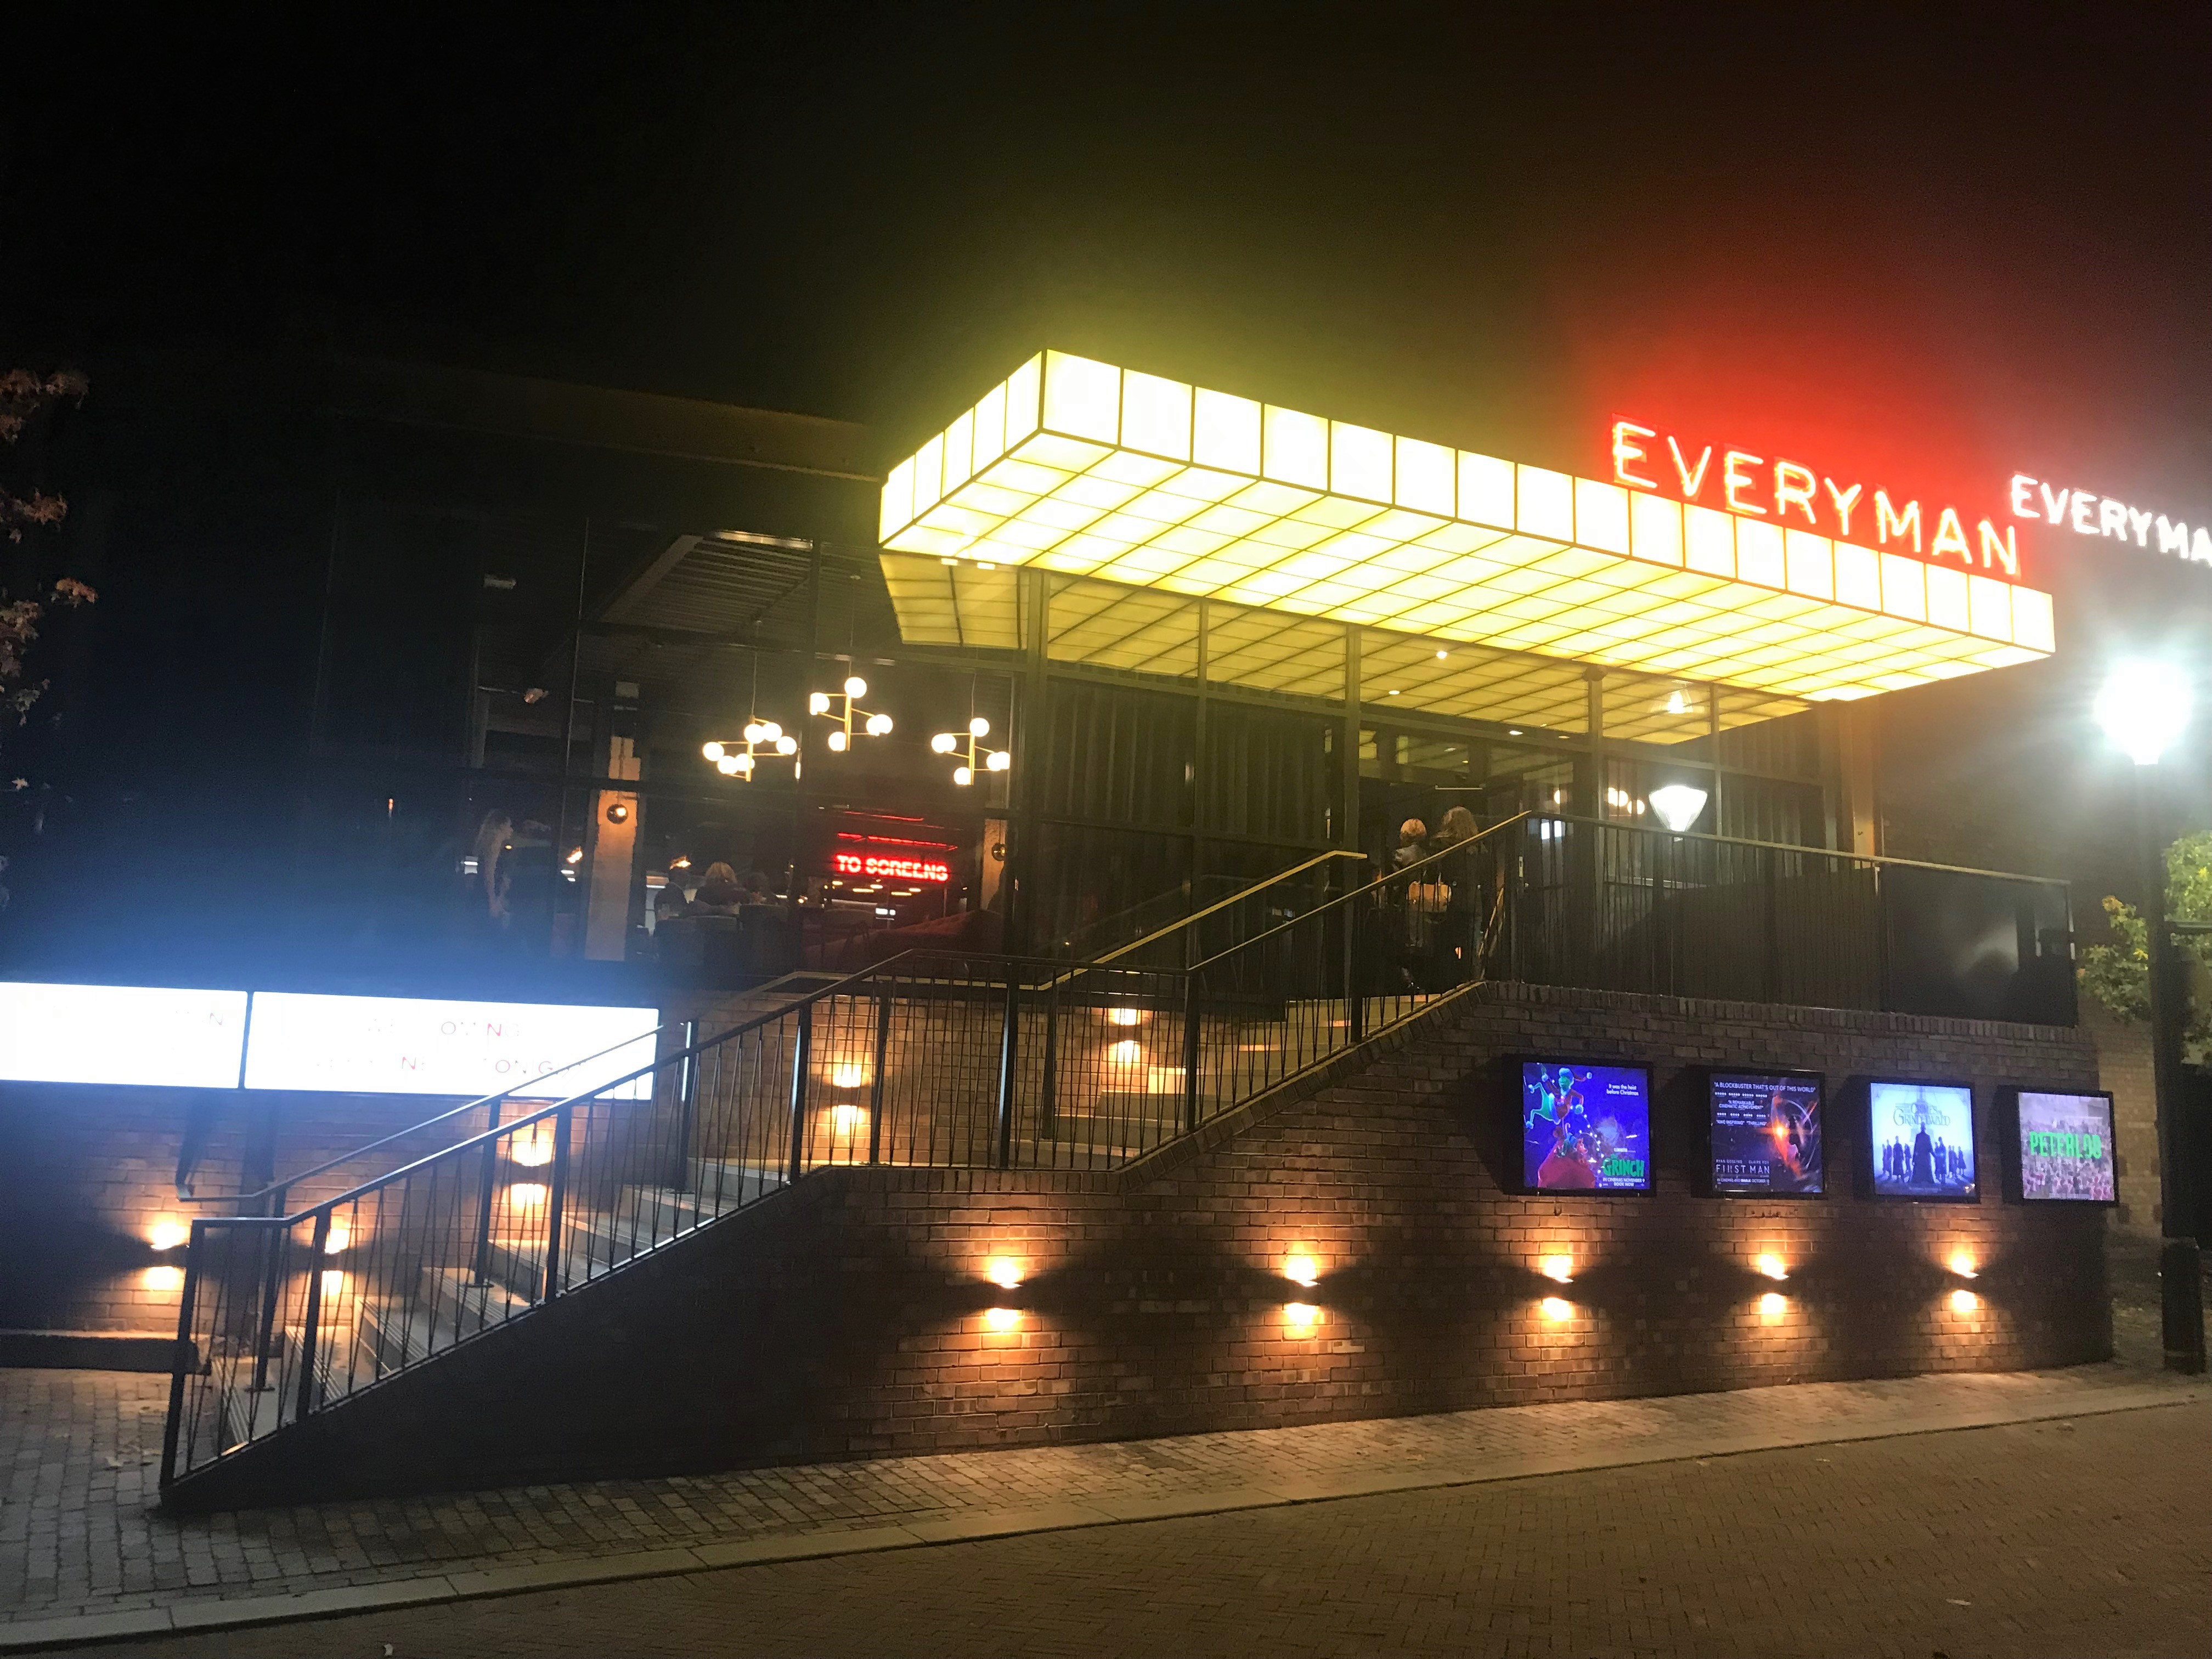 Everyman Cinema Altrincham, acoustically isolated by Farrat